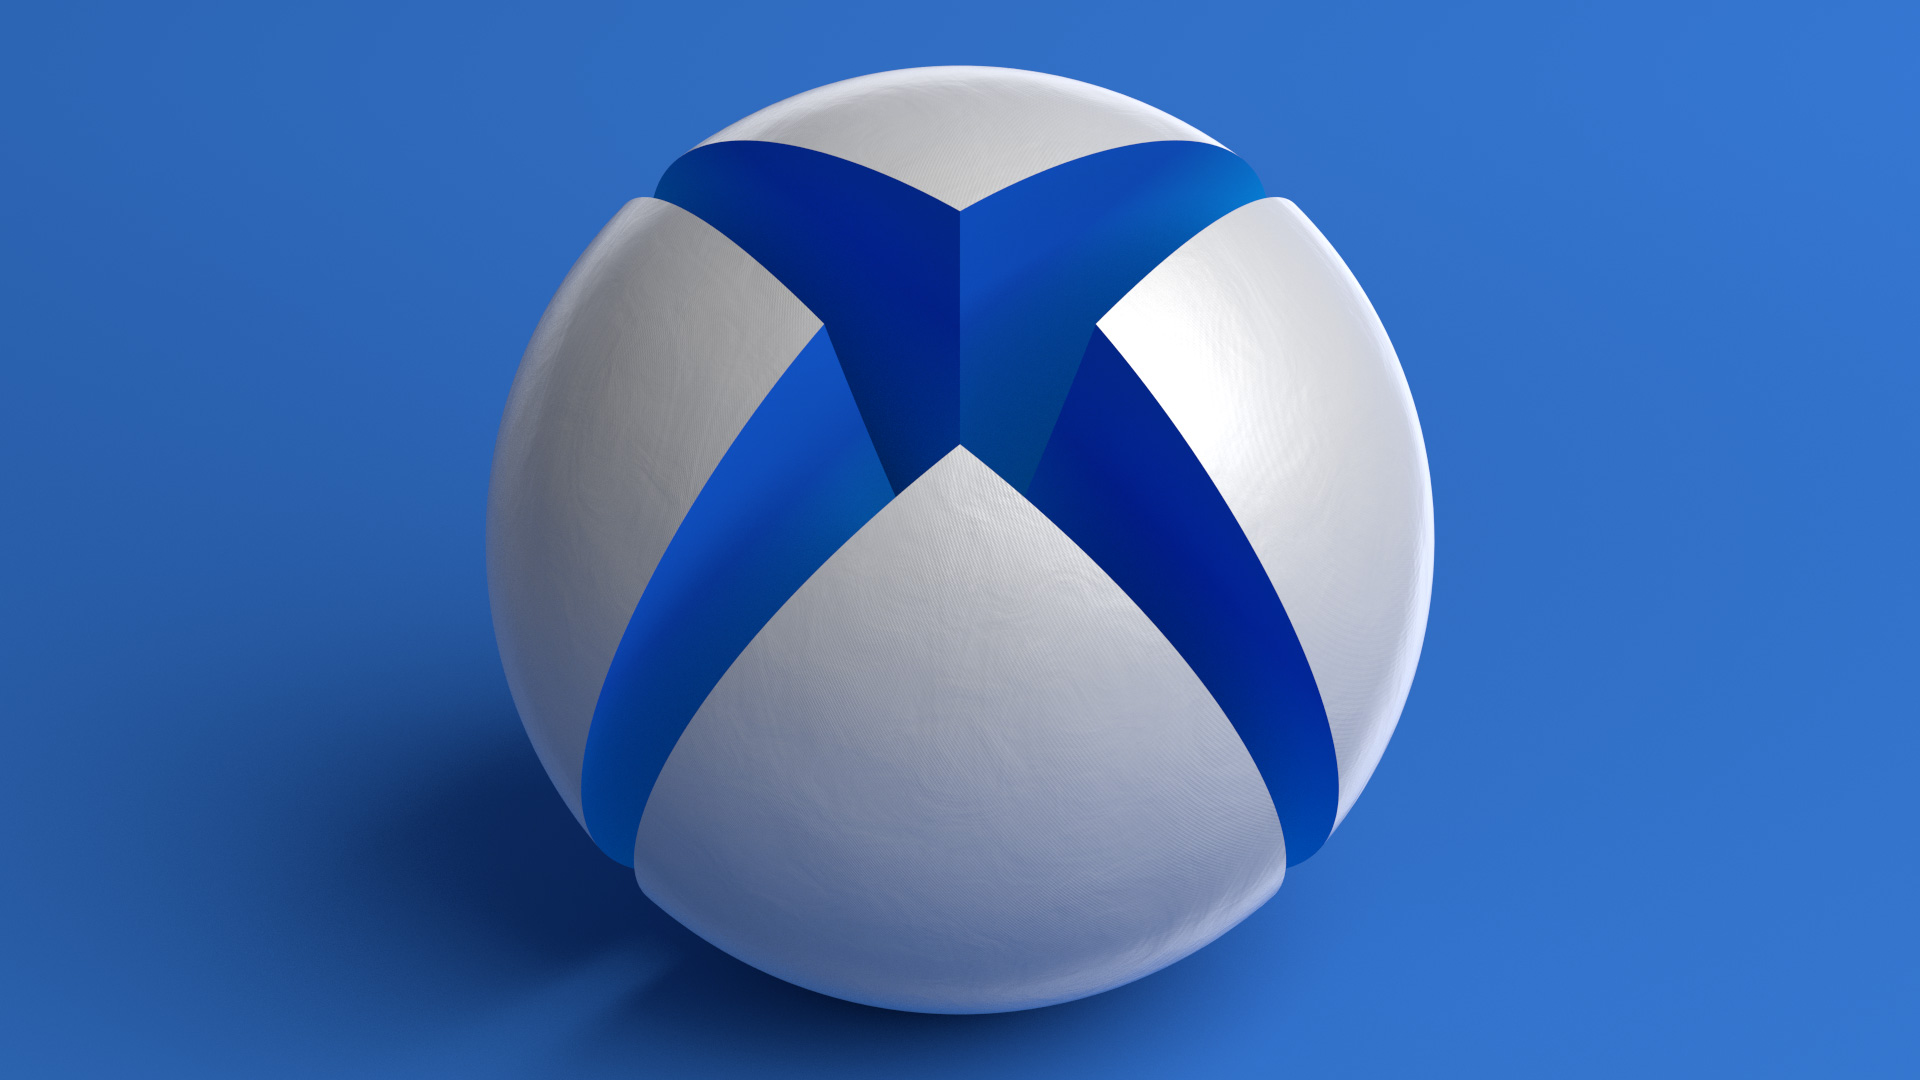 xbox one themes xbox free engine image for user manual